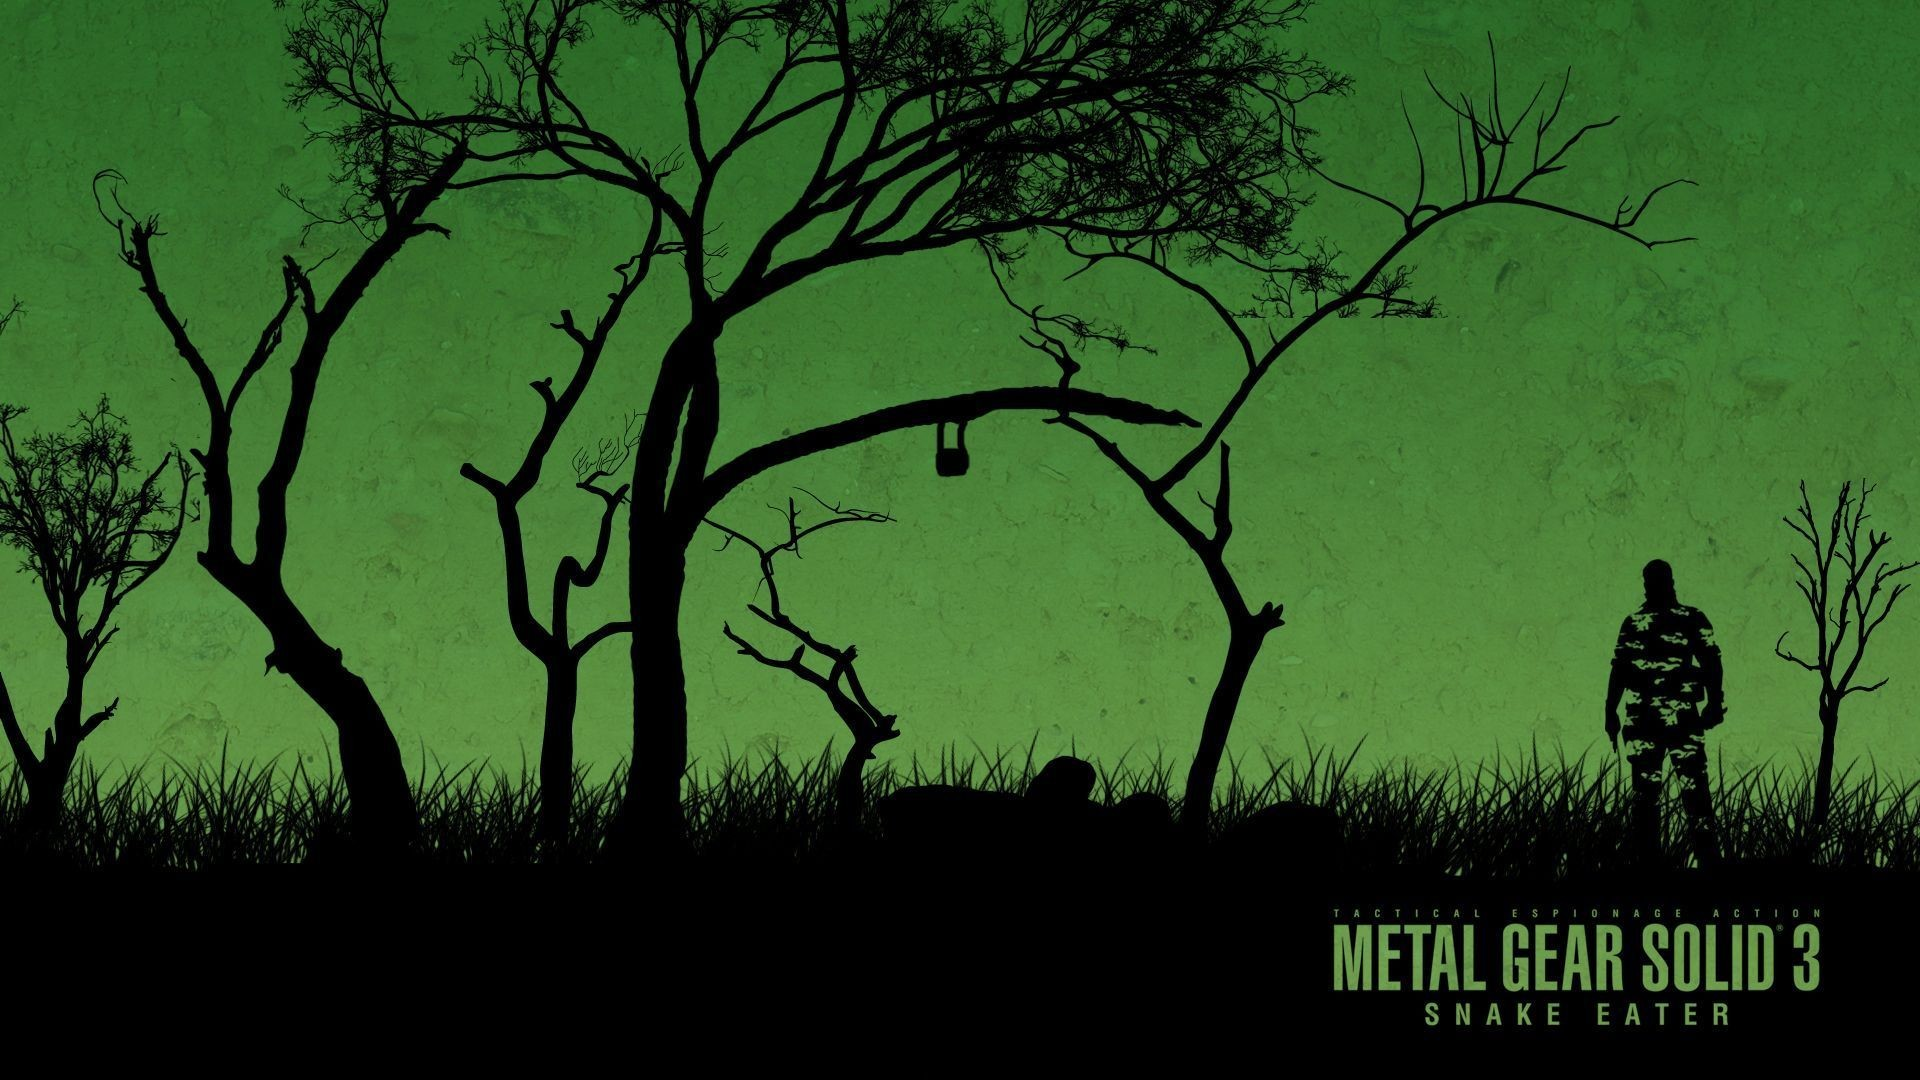 Metal Gear Wallpapers Images On Wallpaper Hd 1920 x 1080 px 623.08 KB solid  5 solid